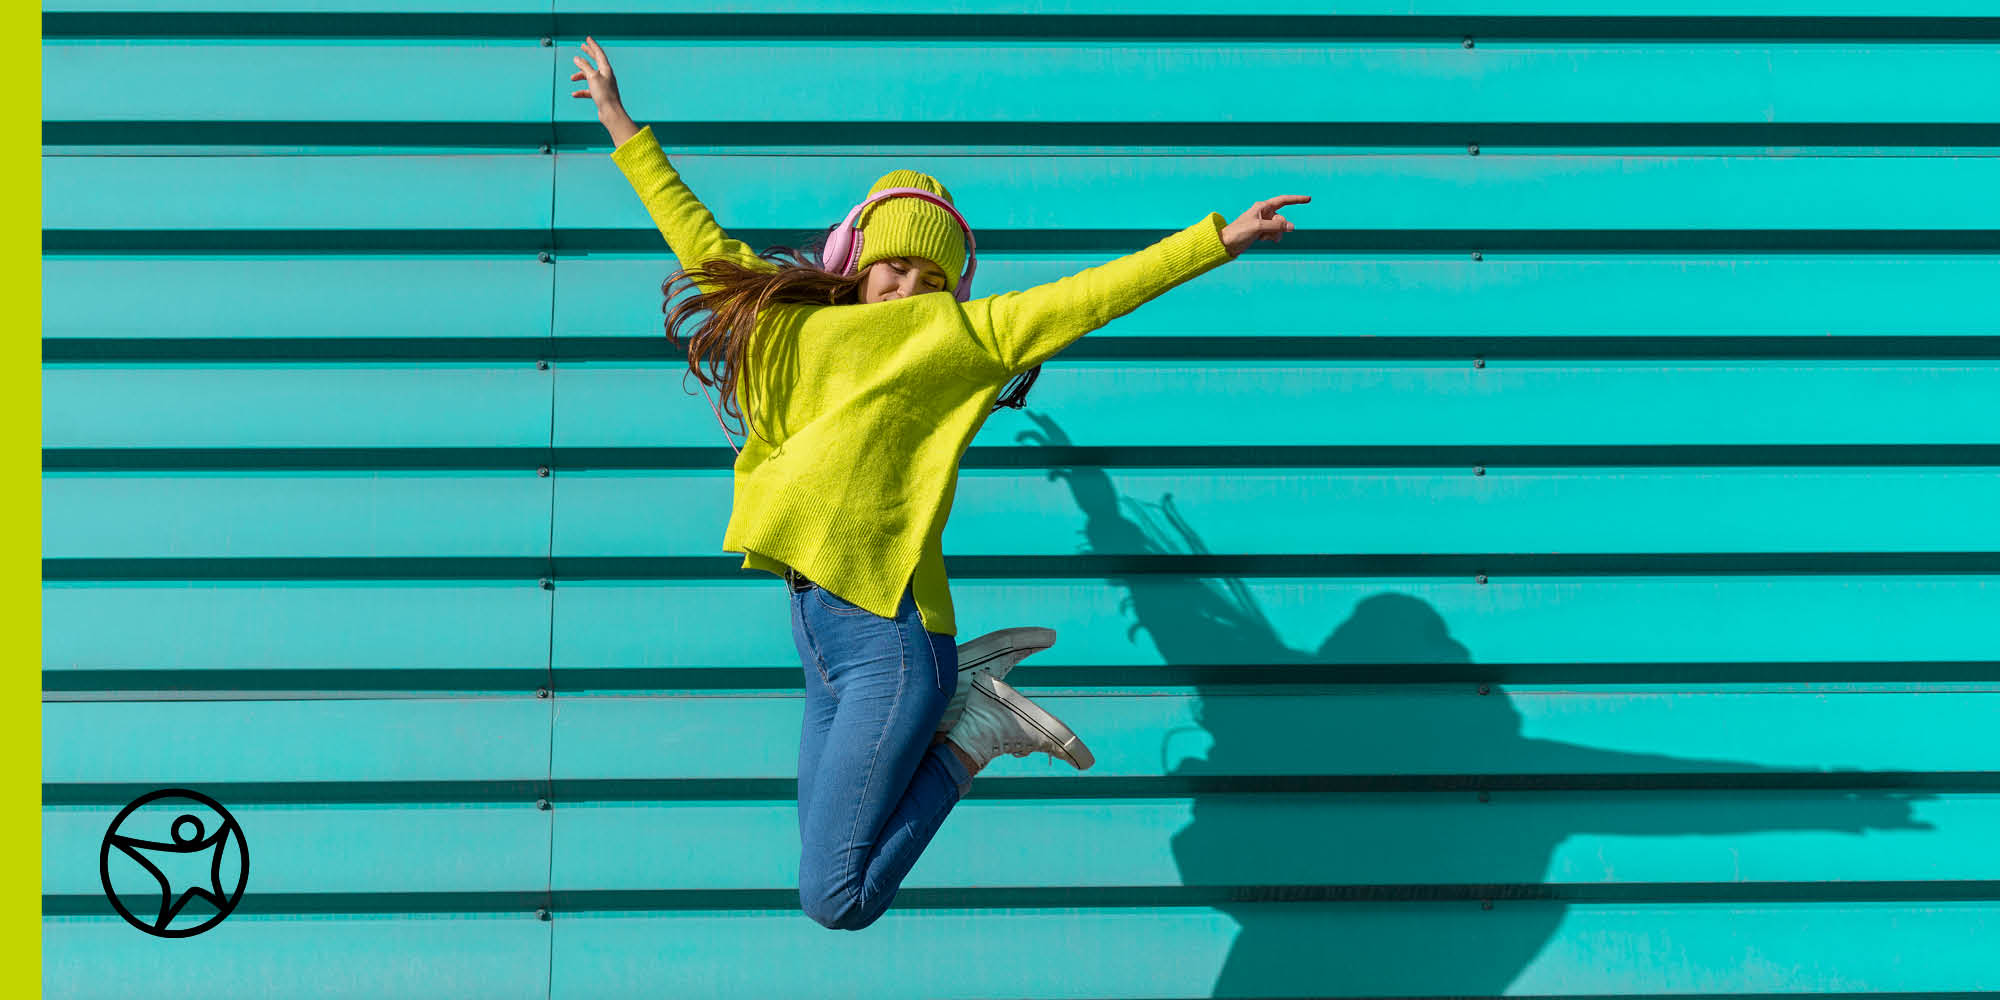 High school student jumping in front of a wall